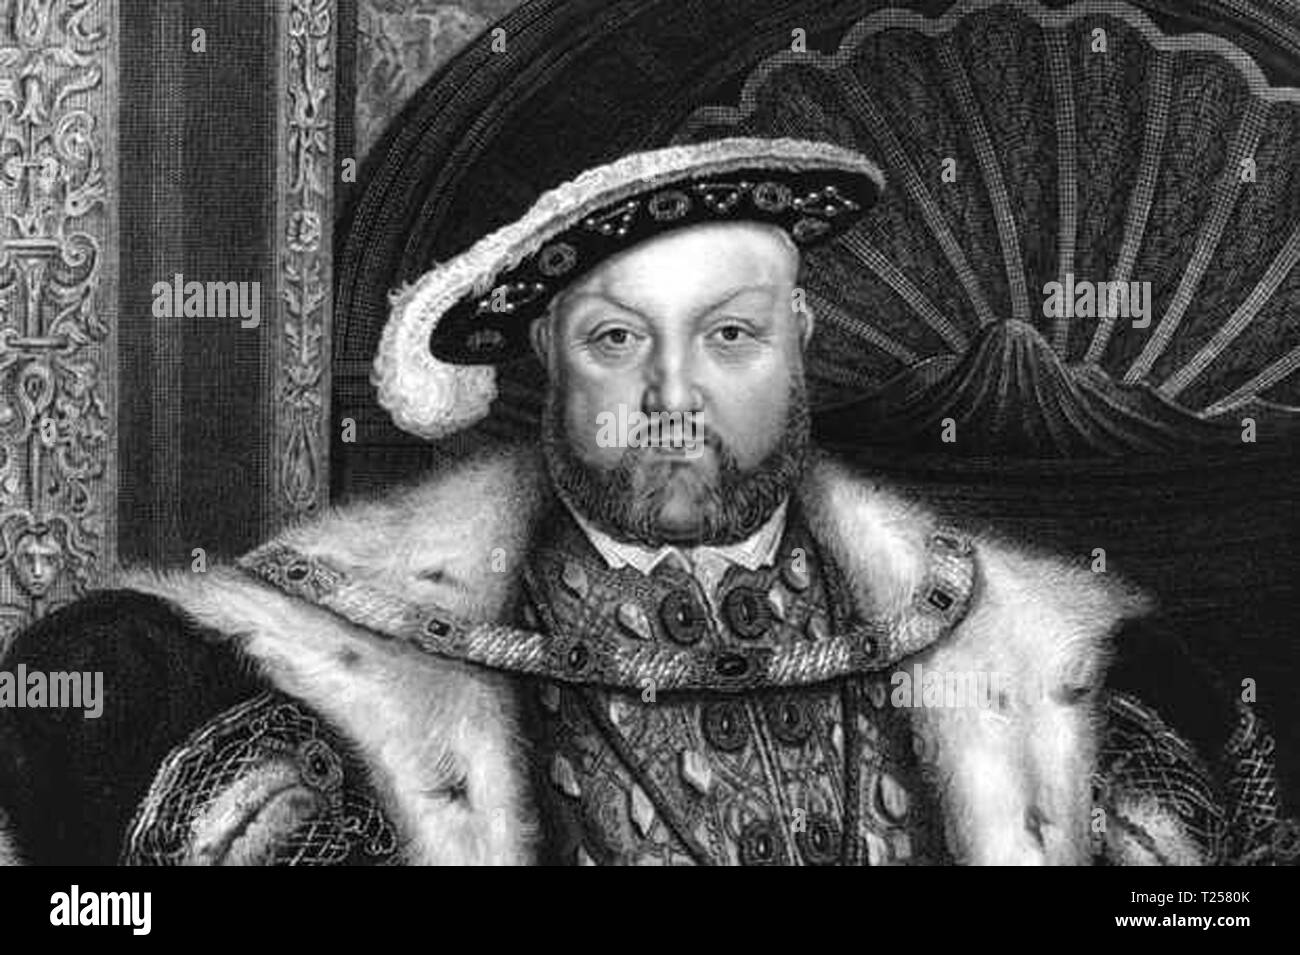 Circa 1540, A portrait of King Henry VIII (1491 - 1547), an engraving by T A Dean from a painting by Holbein. (Photo by Hulton Archive/Getty Images) - Stock Image